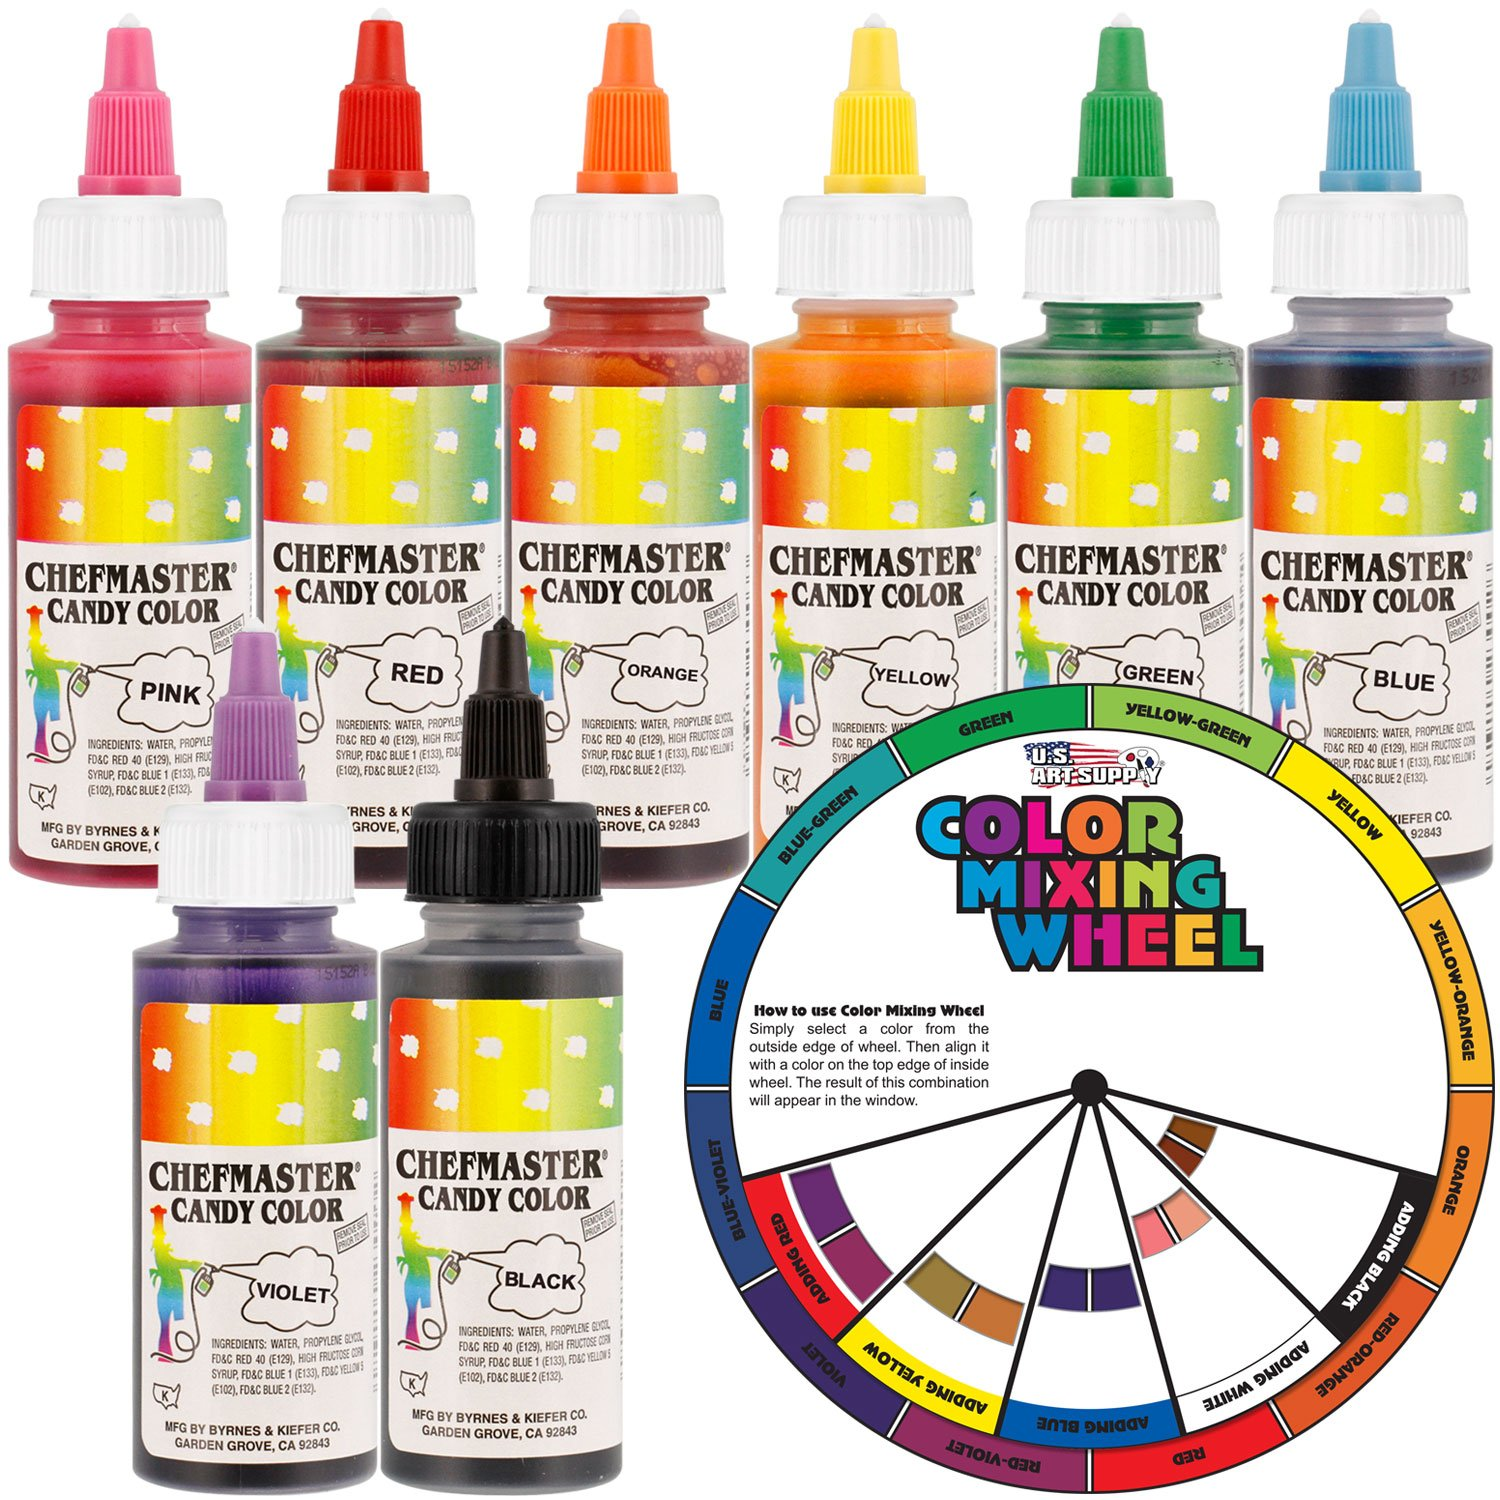 Chefmaster by US Cake Supply 2-ounce Liquid Candy Food Color 8 Bottle Kit with Mixing Wheel by U.S. Cake Supply